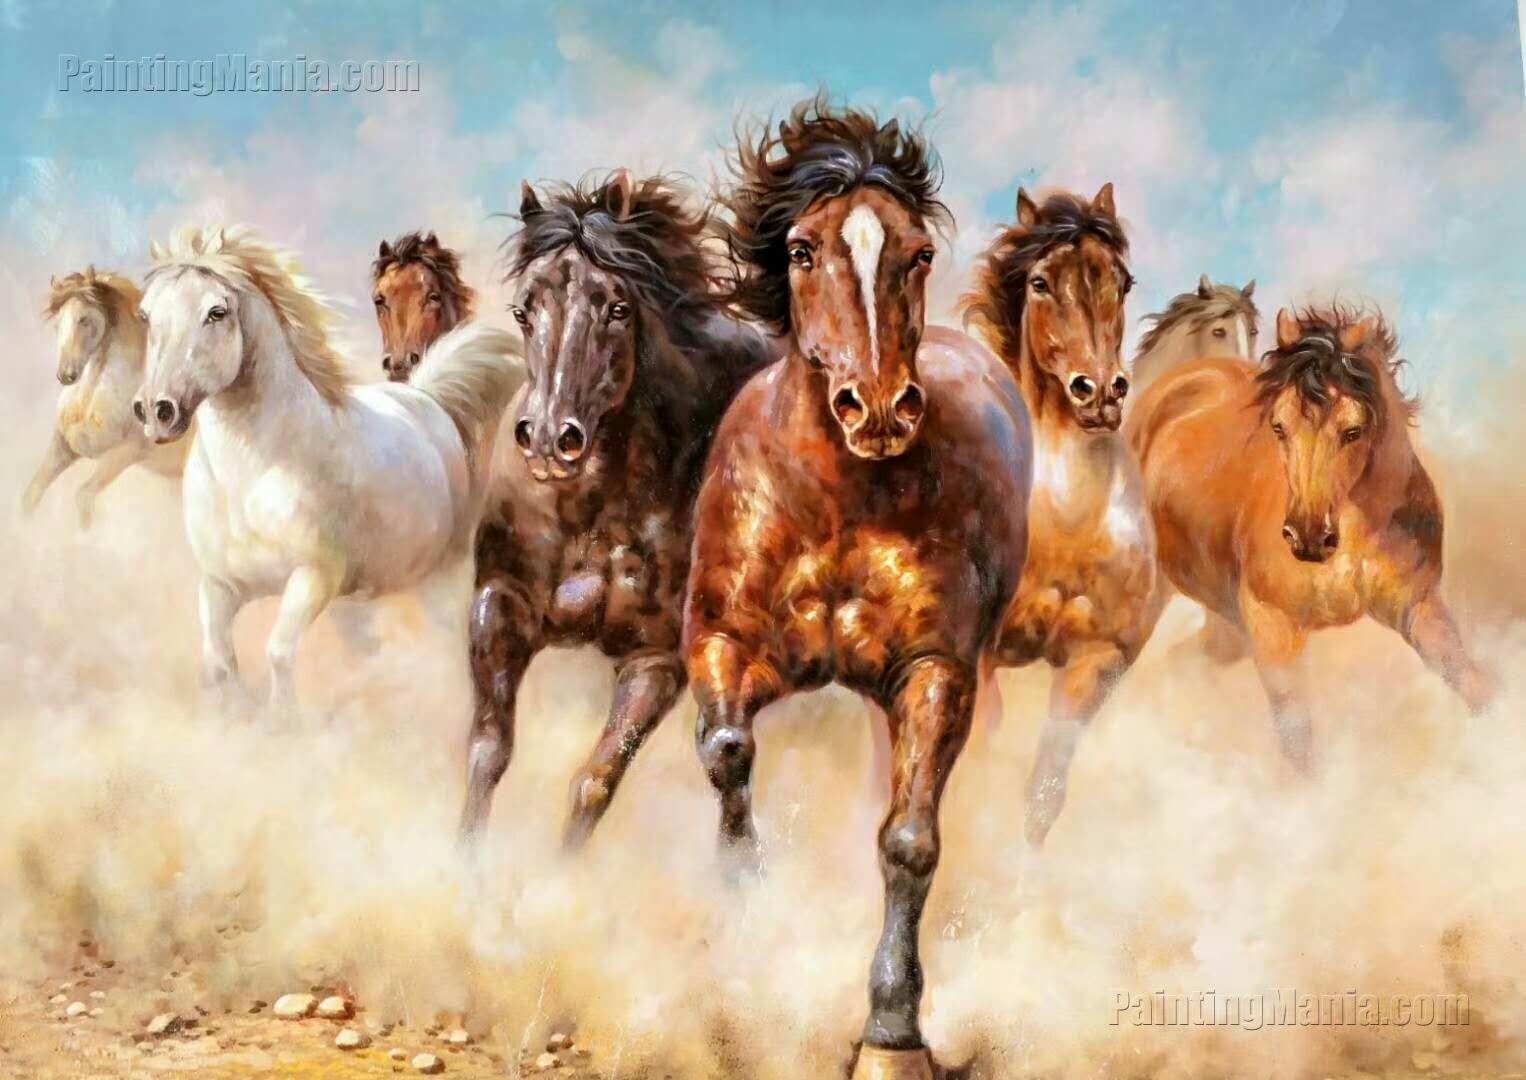 The Eight Galloping Horses Wild Horses Running Dust Horses Animals Paintings